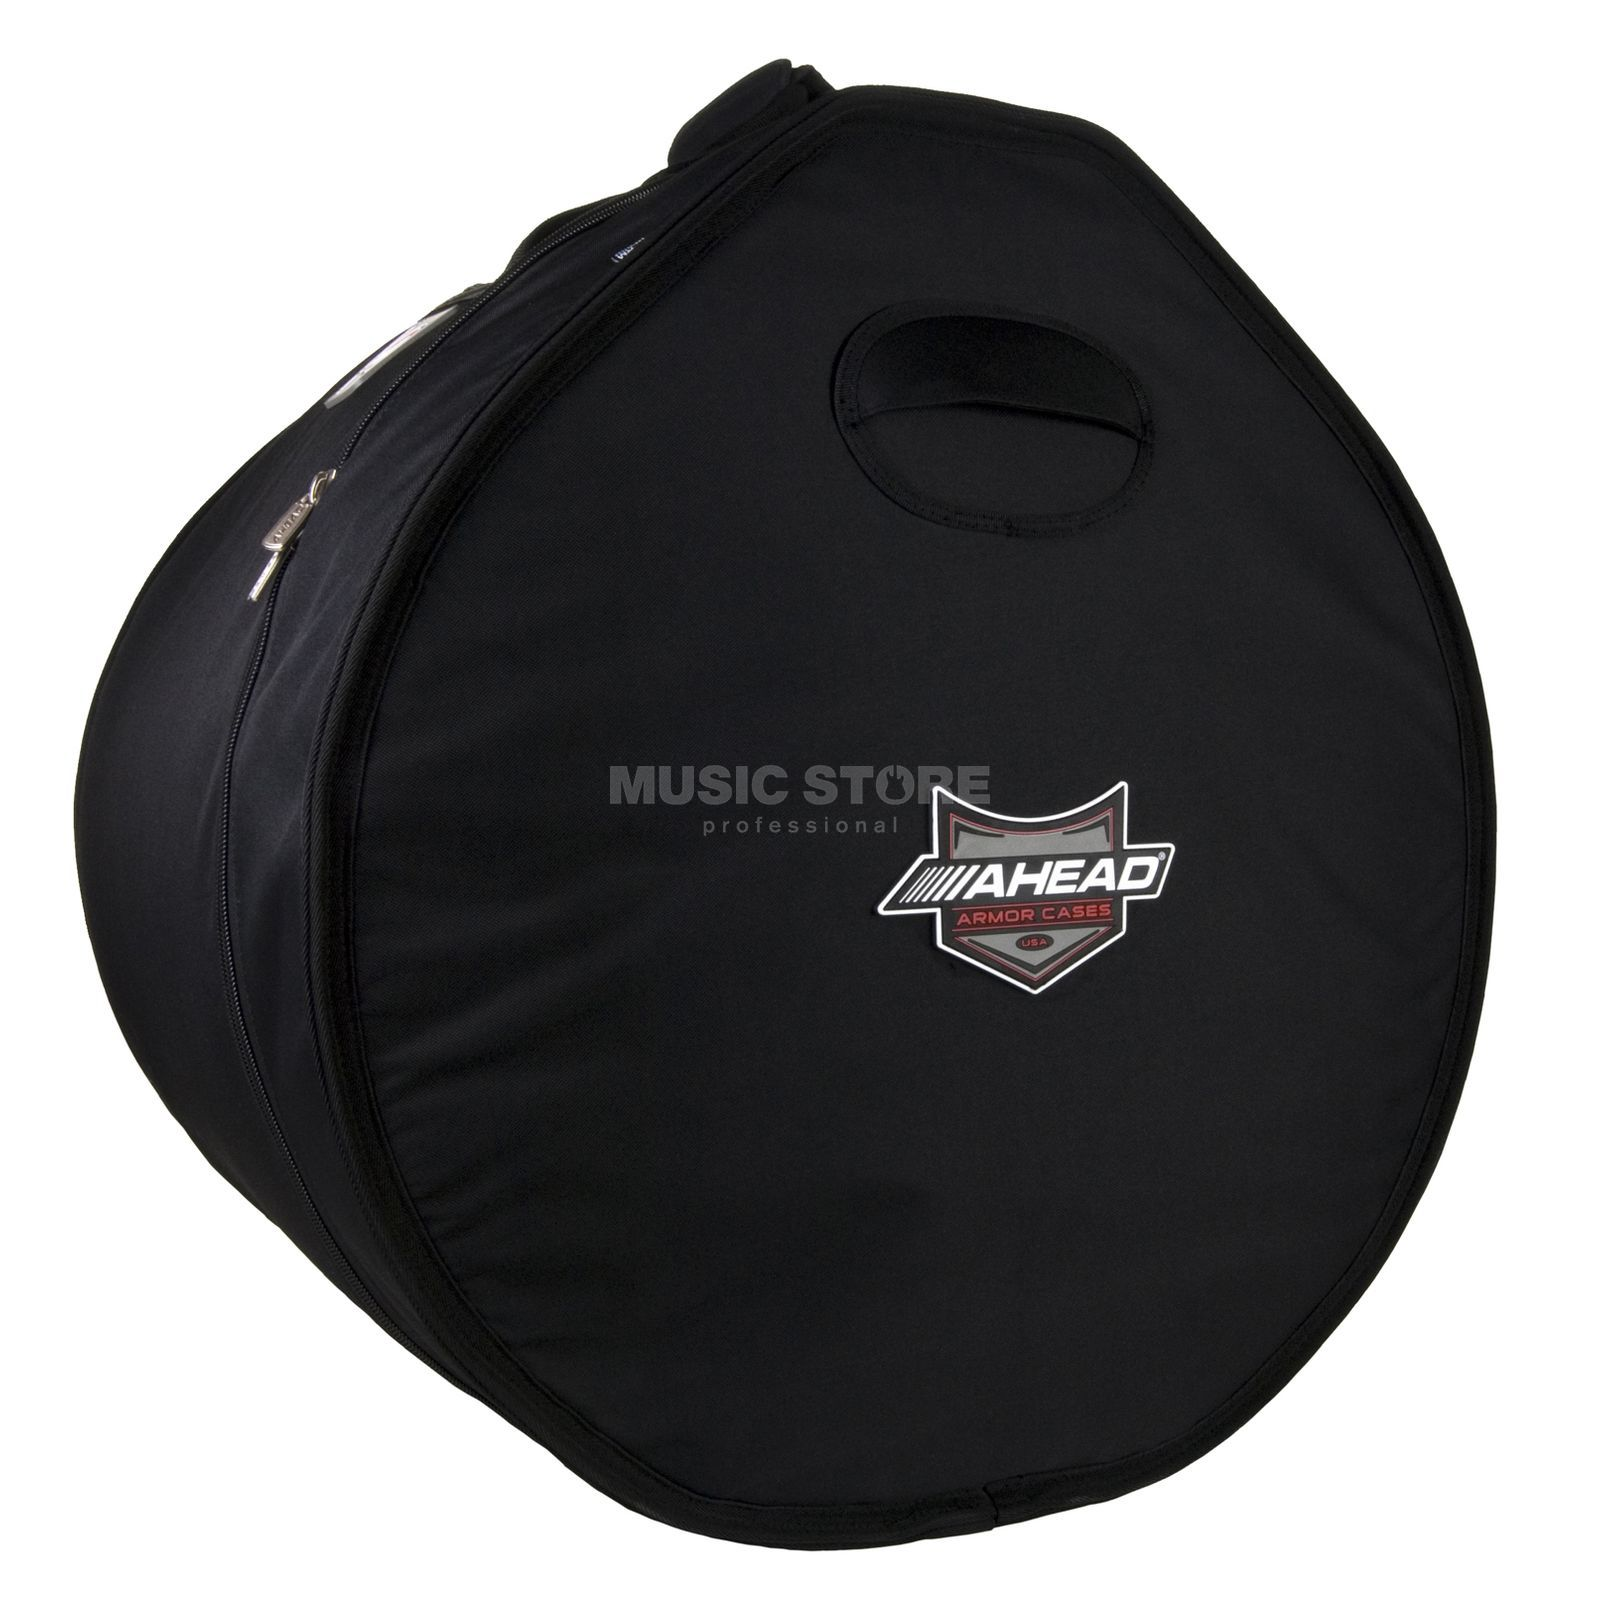 "Ahead Armor Cases BassDrum Bag 20""x14""  Изображение товара"